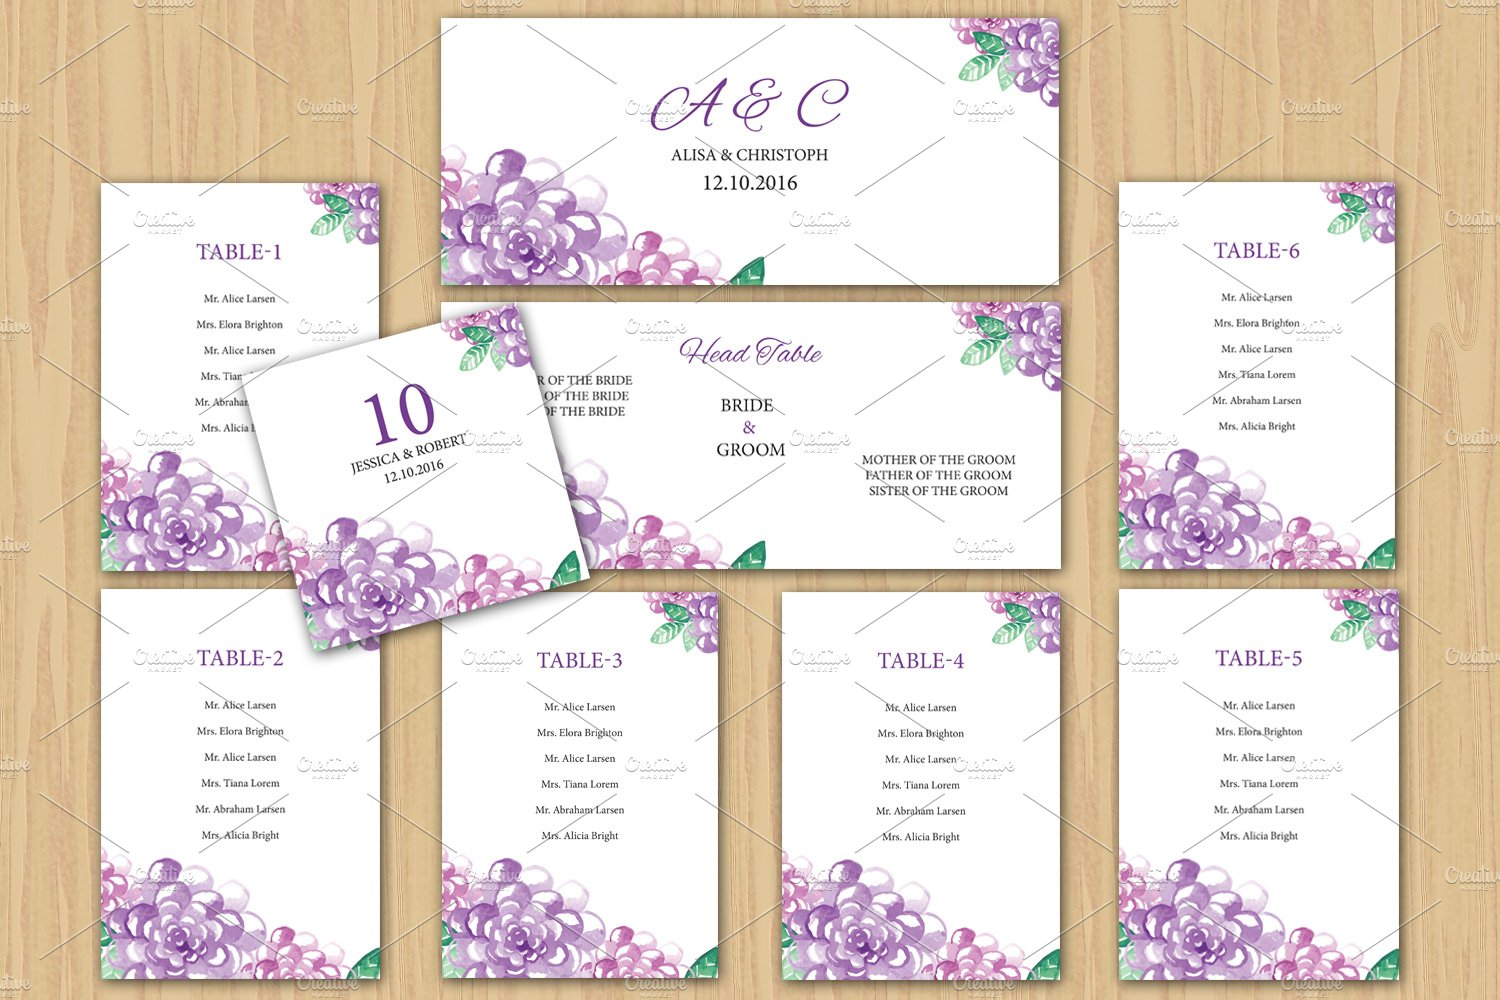 Wedding Seating Chart Template ~ Stationery Templates ~ Creative Market